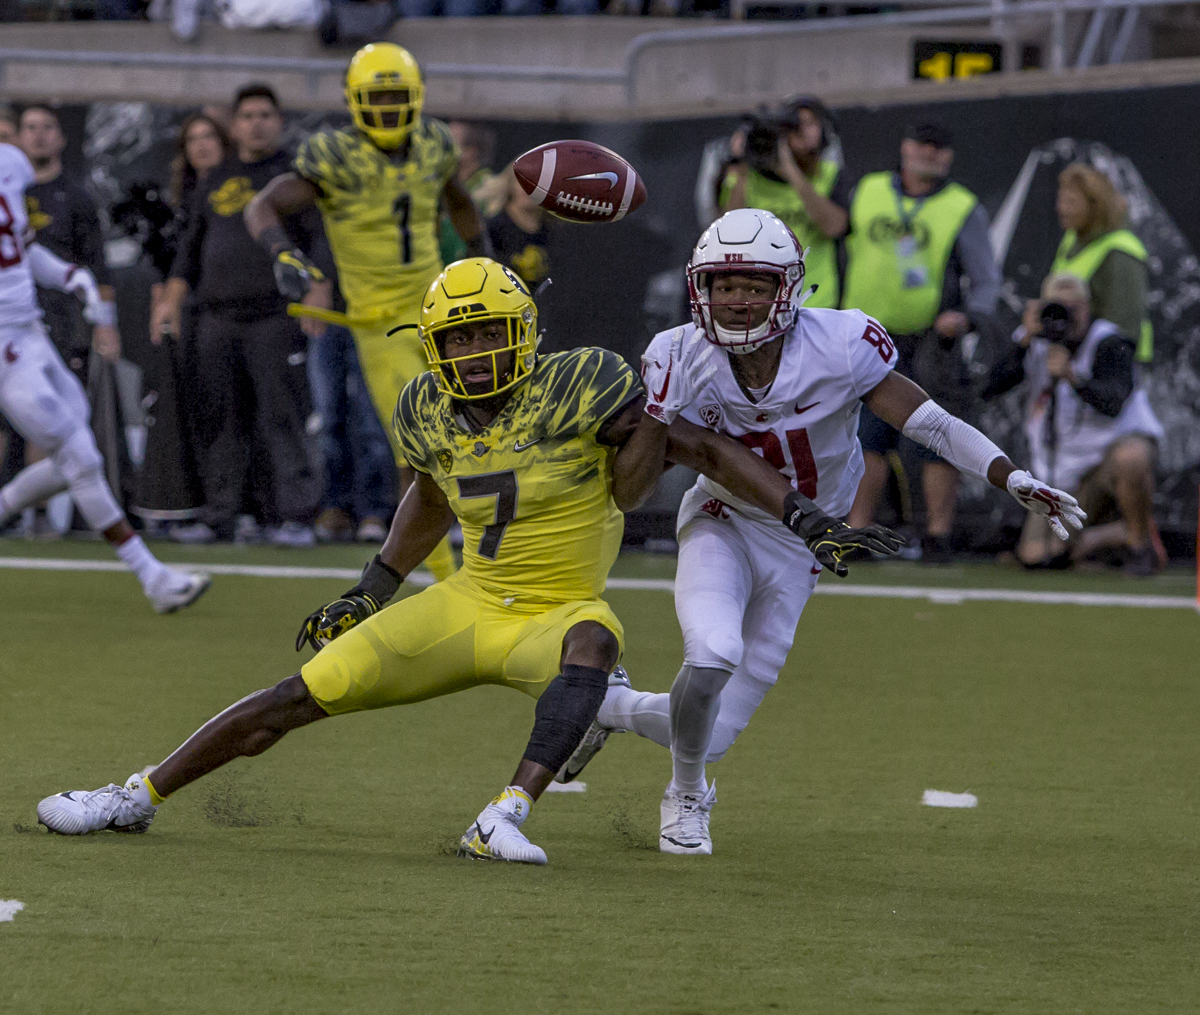 Oregon defender Ugochukwu Amadi (#7) attempts to catch a pass intended for Washington State wide receiver Renard Bell (#81). The Oregon Ducks trail the Washington State Cougars 10 to 13 at the end of the first half. Photo by Ben Lonergan, Oregon News Lab